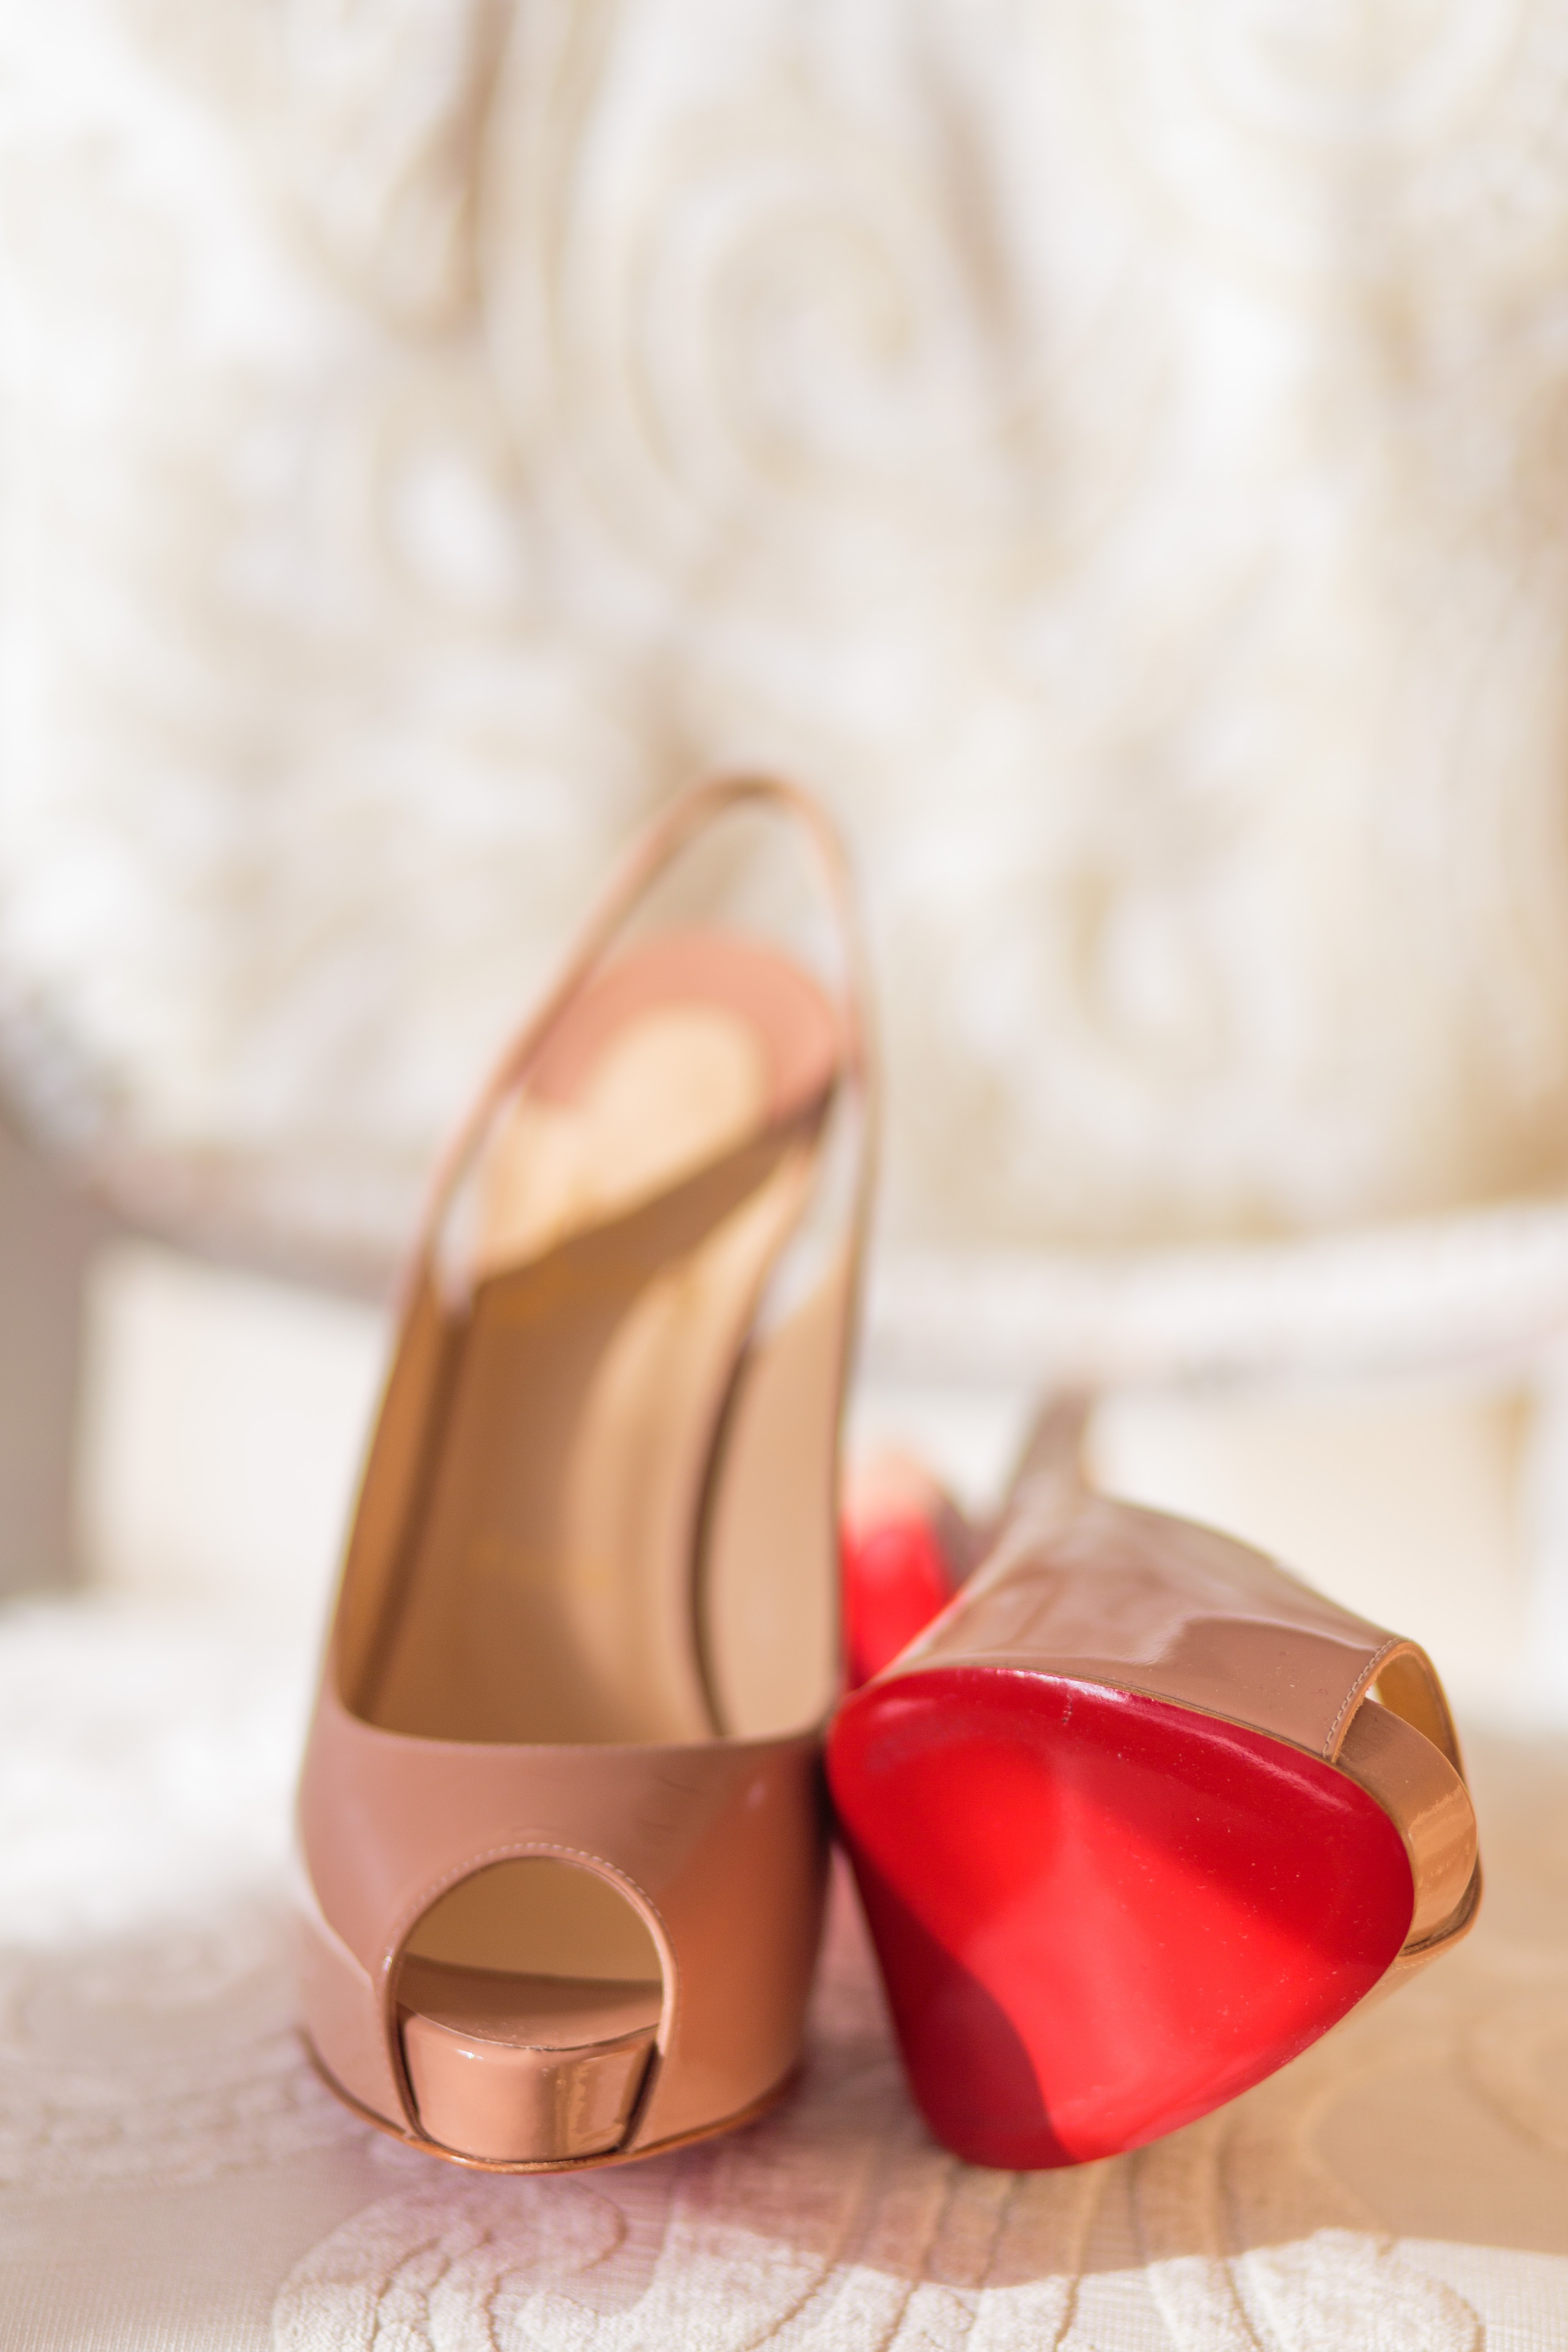 selective focus photography of pair of pink peep-toe heeled sandals